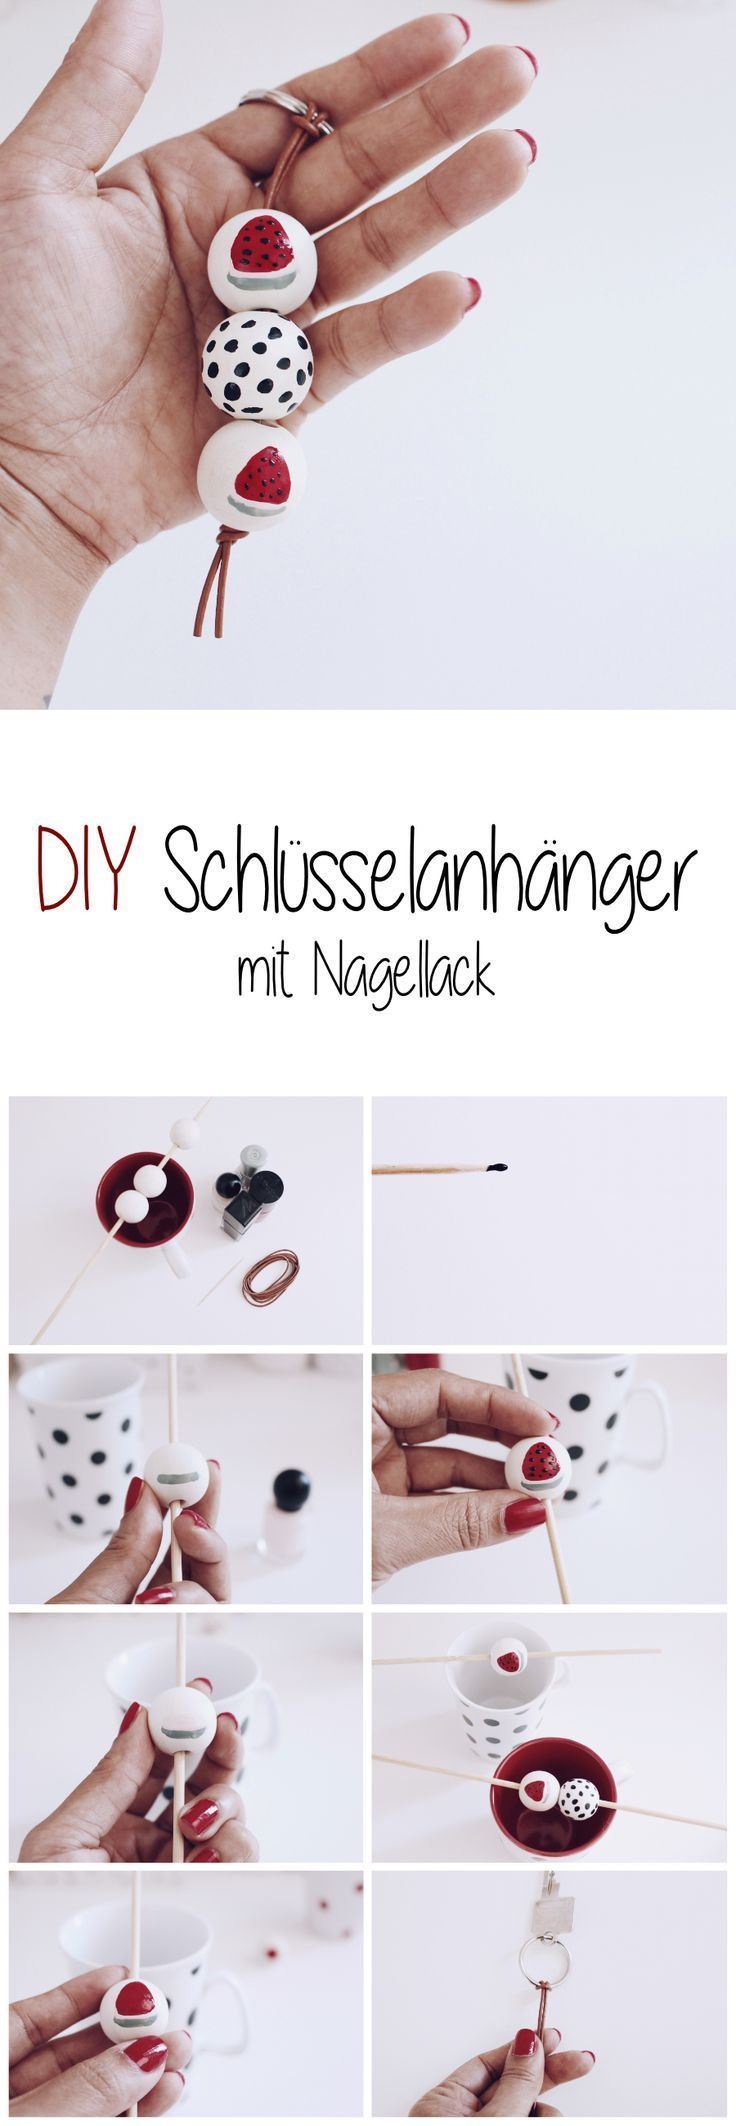 diy schl sselanh nger mit nagellack selber machen. Black Bedroom Furniture Sets. Home Design Ideas